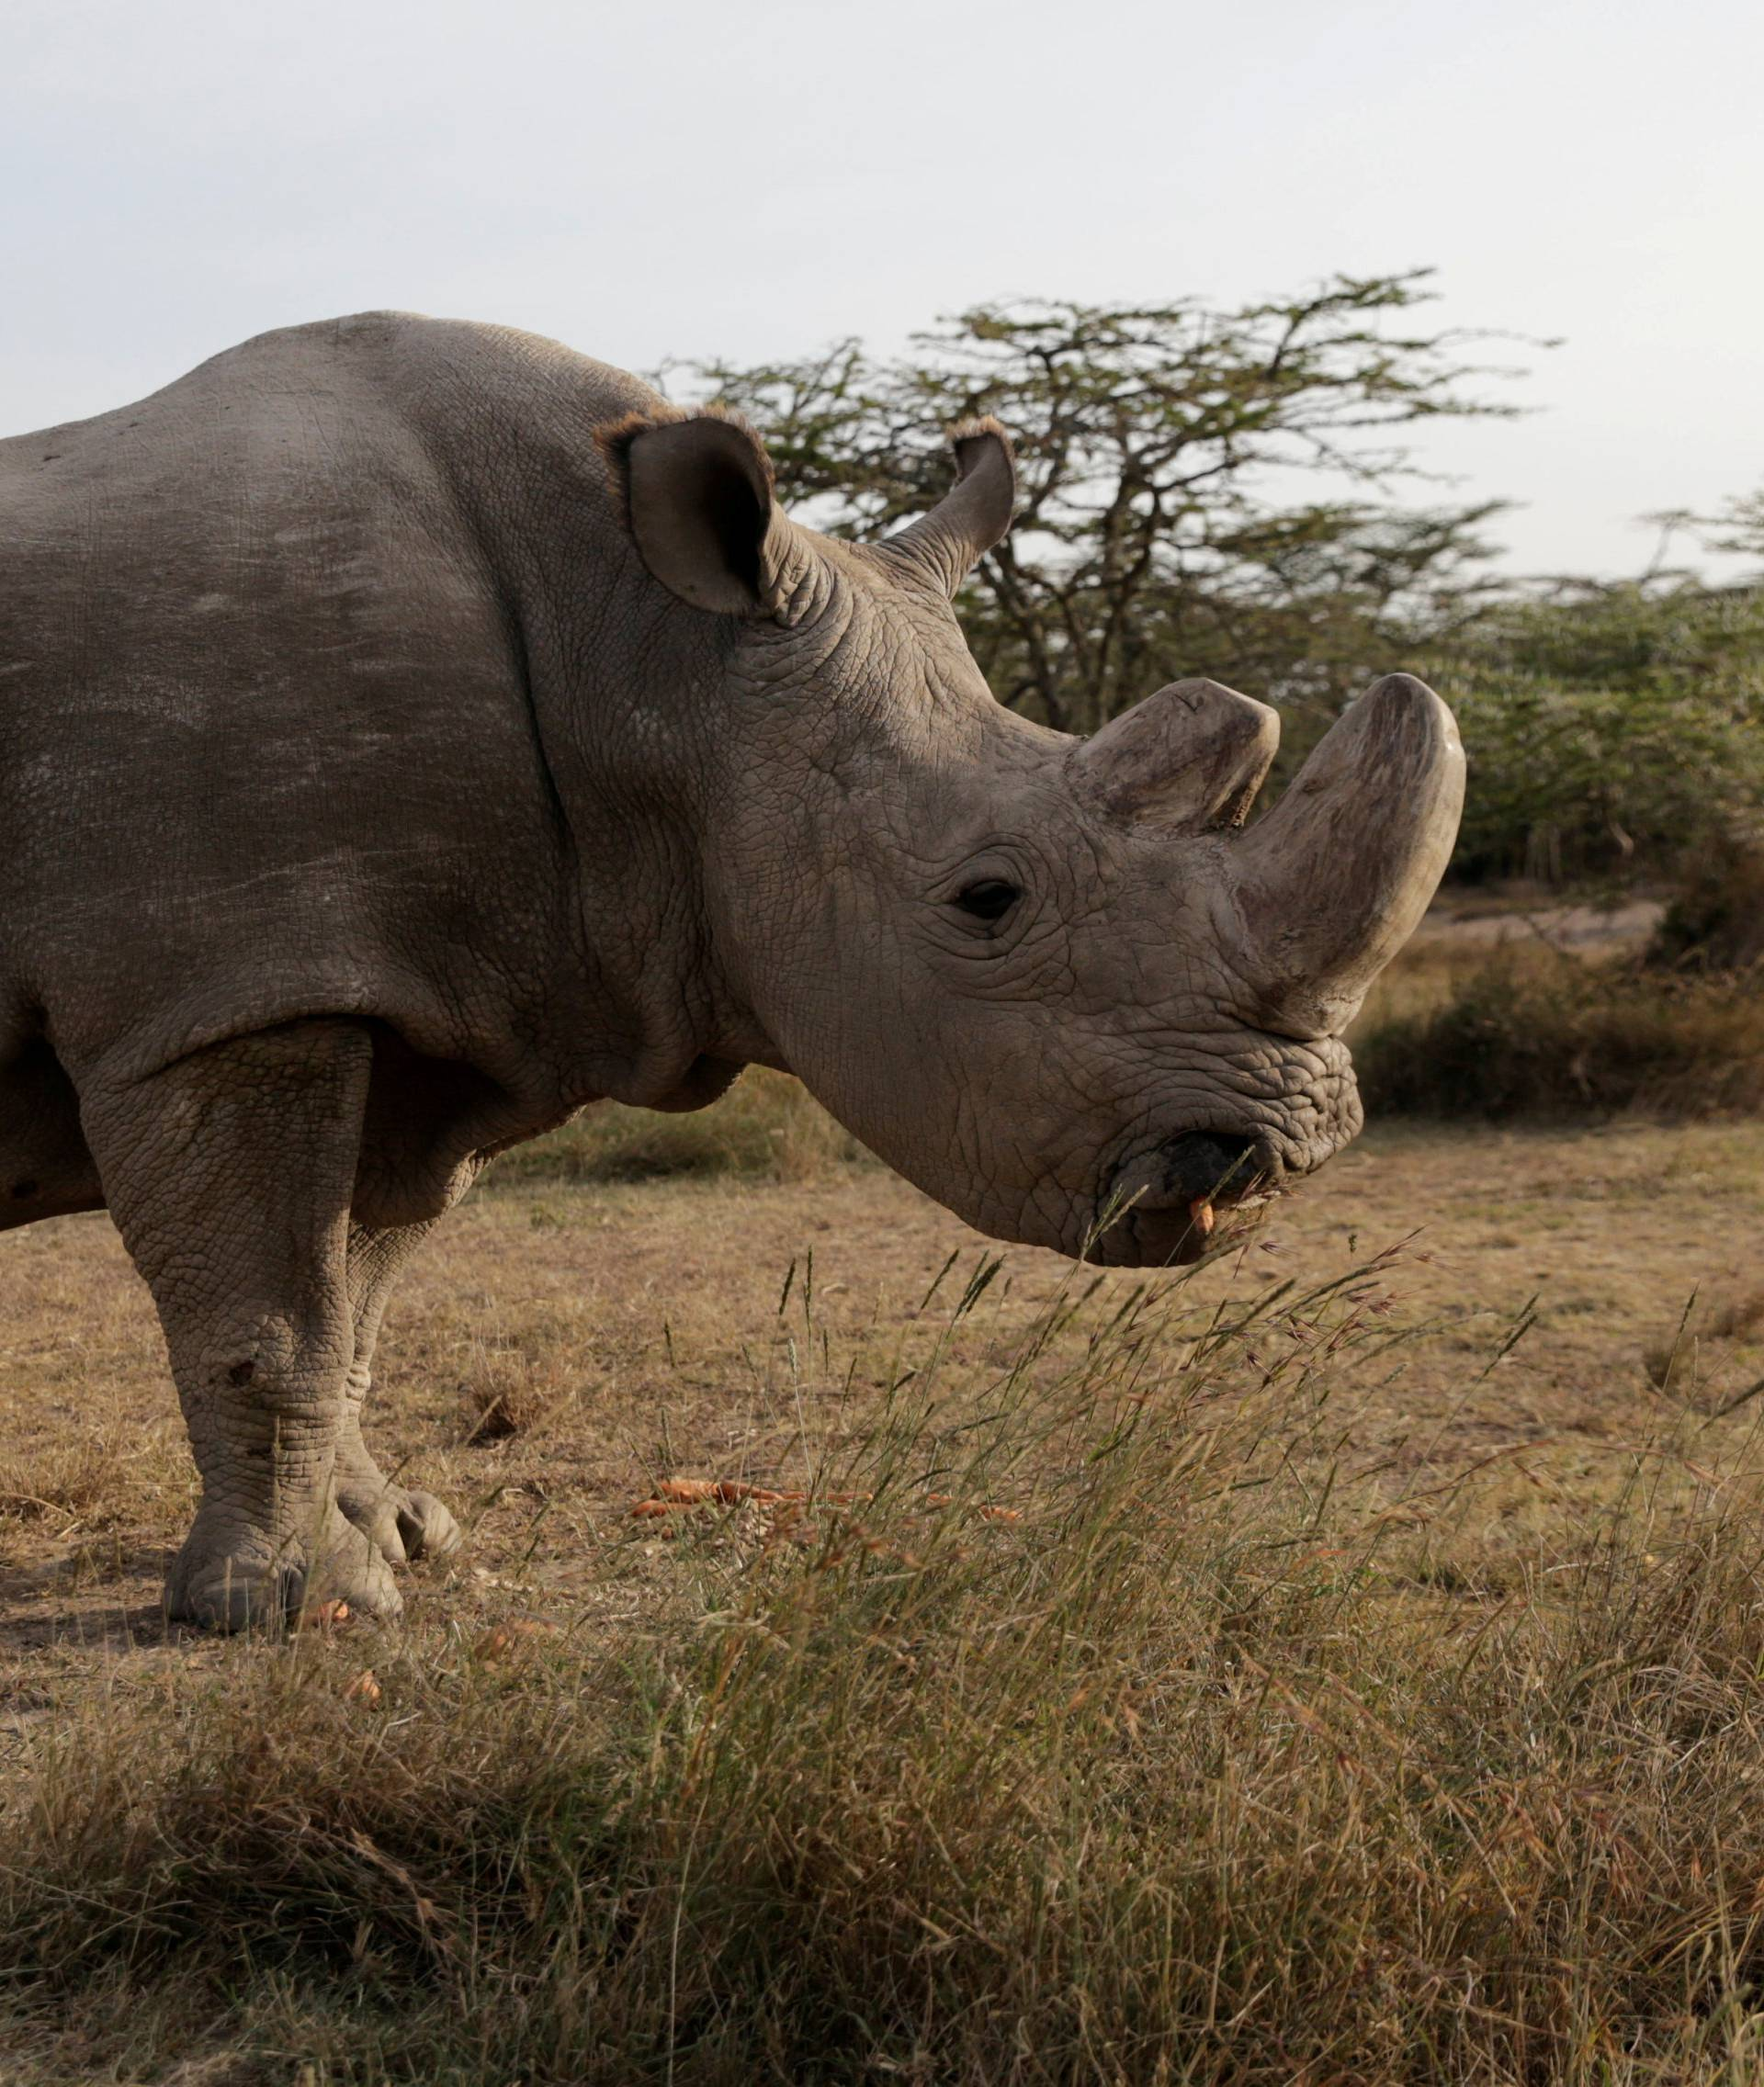 FILE PHOTO: The last surviving male northern white rhino named 'Sudan' is seen at the Ol Pejeta Conservancy in Laikipia